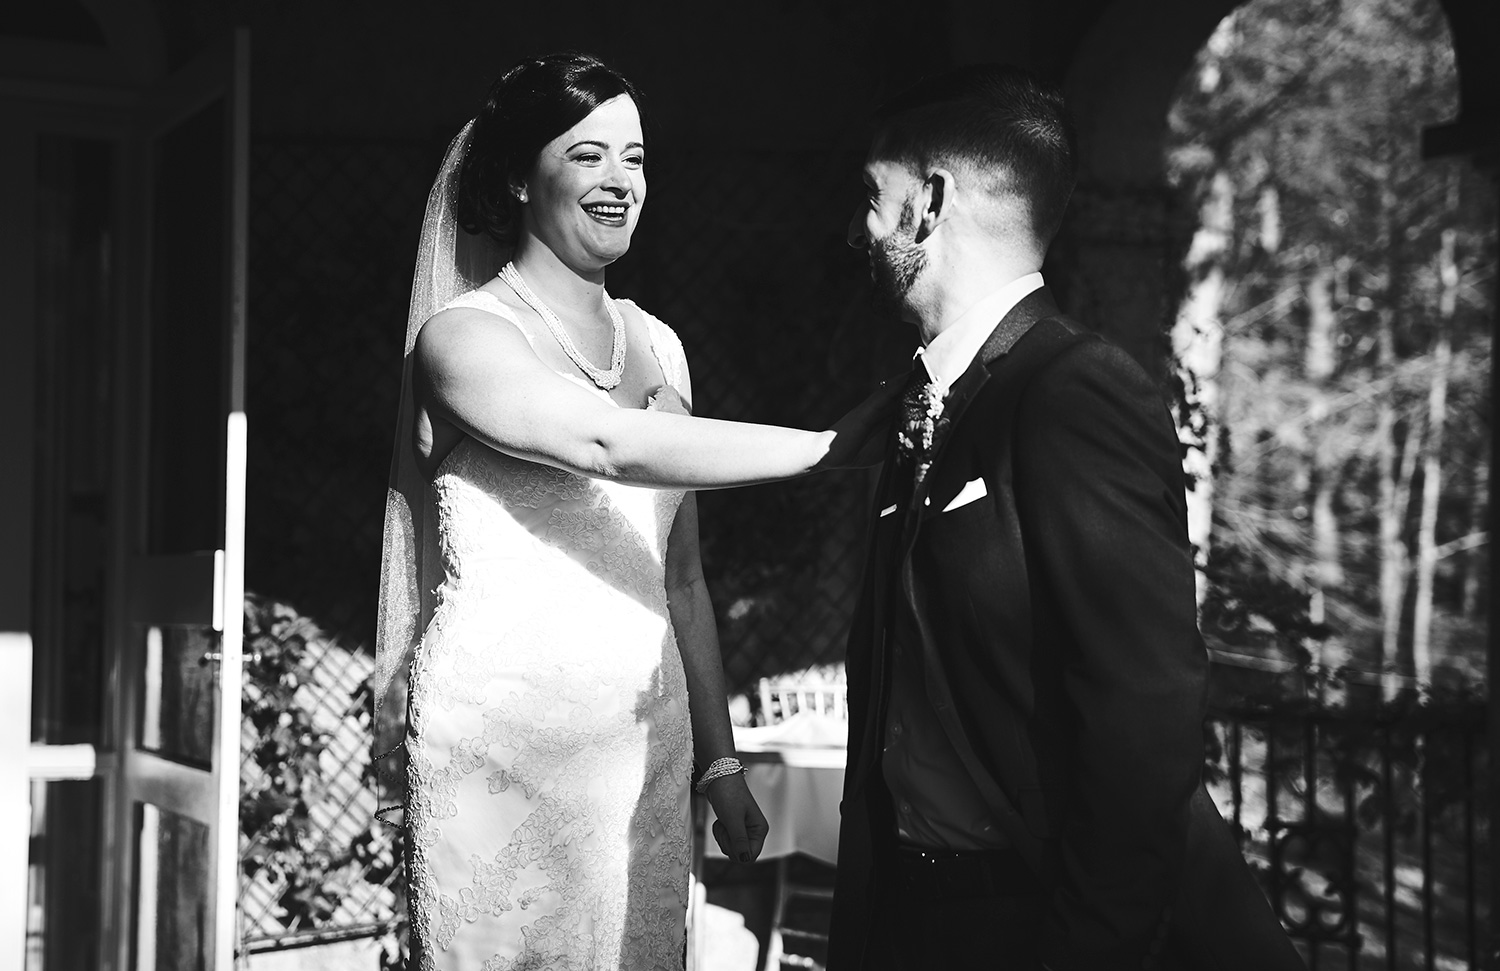 161119_ArrowParkLake&LodgeWedding_By_BriJohnsonWeddings_0049.jpg